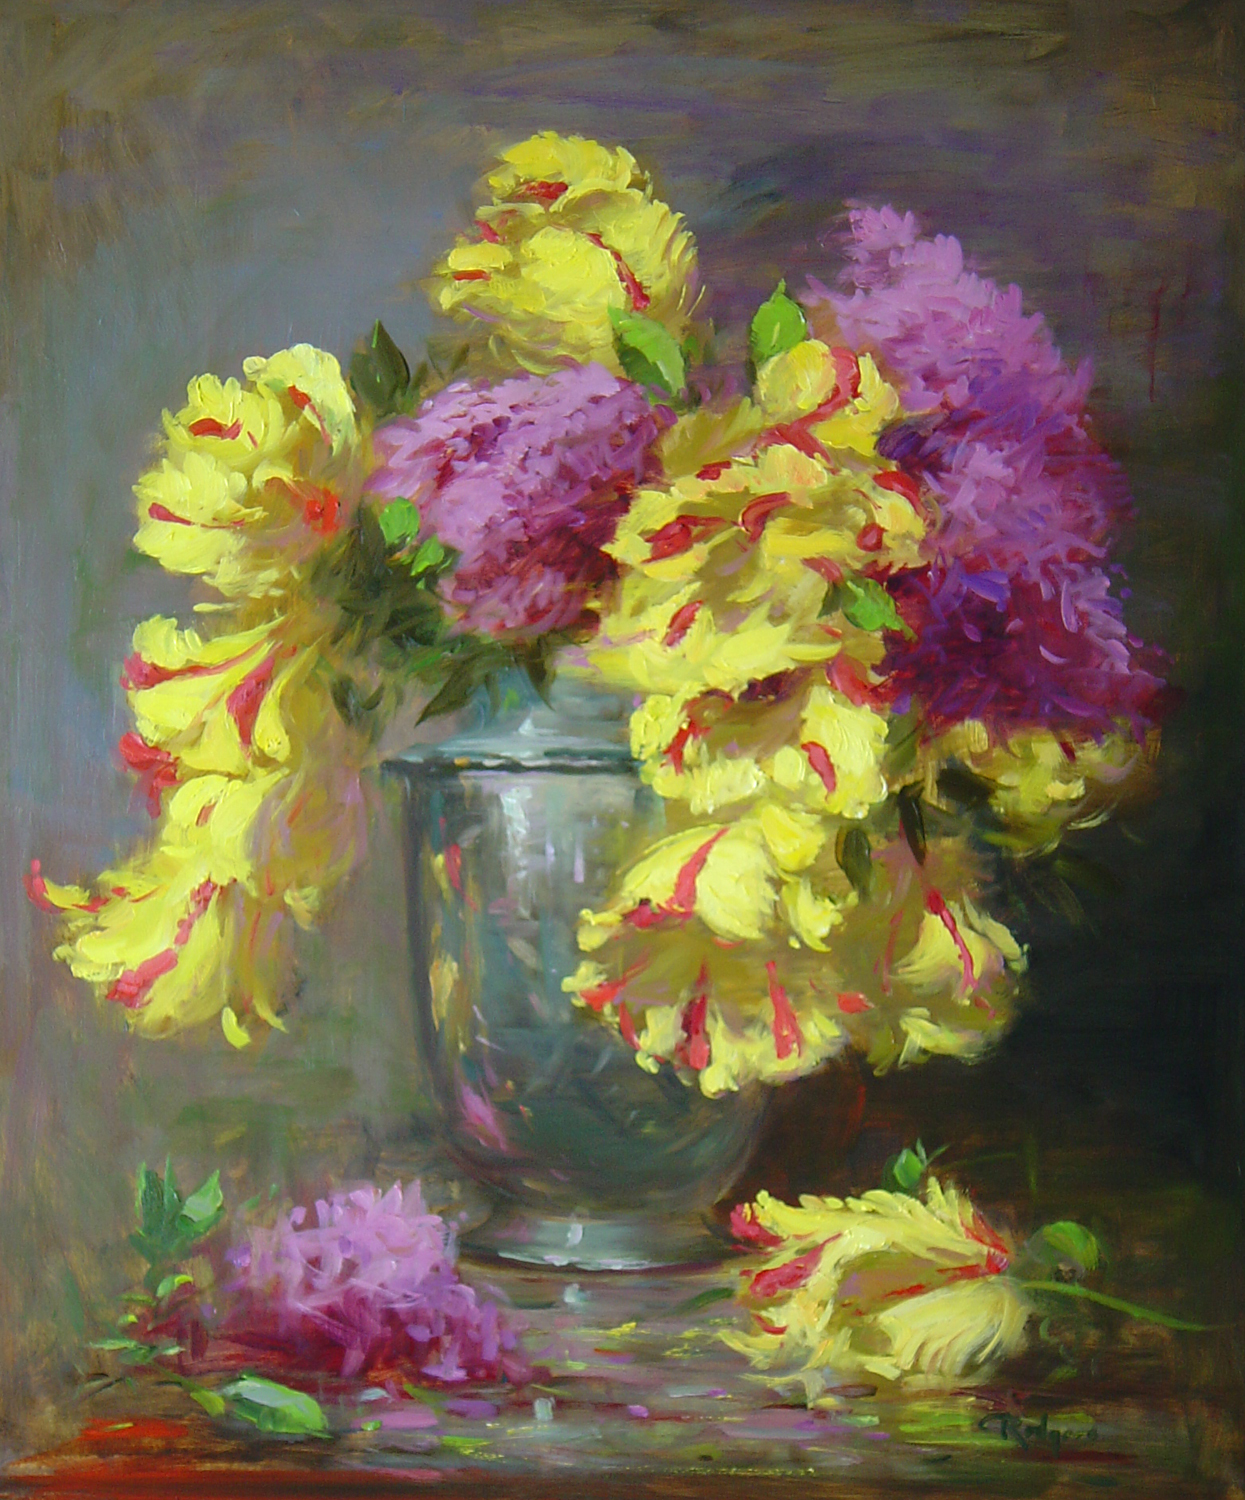 PARROT TULIPS & LILACS by Jim Rodgers - 24 x 20 in., o/b • $4,700